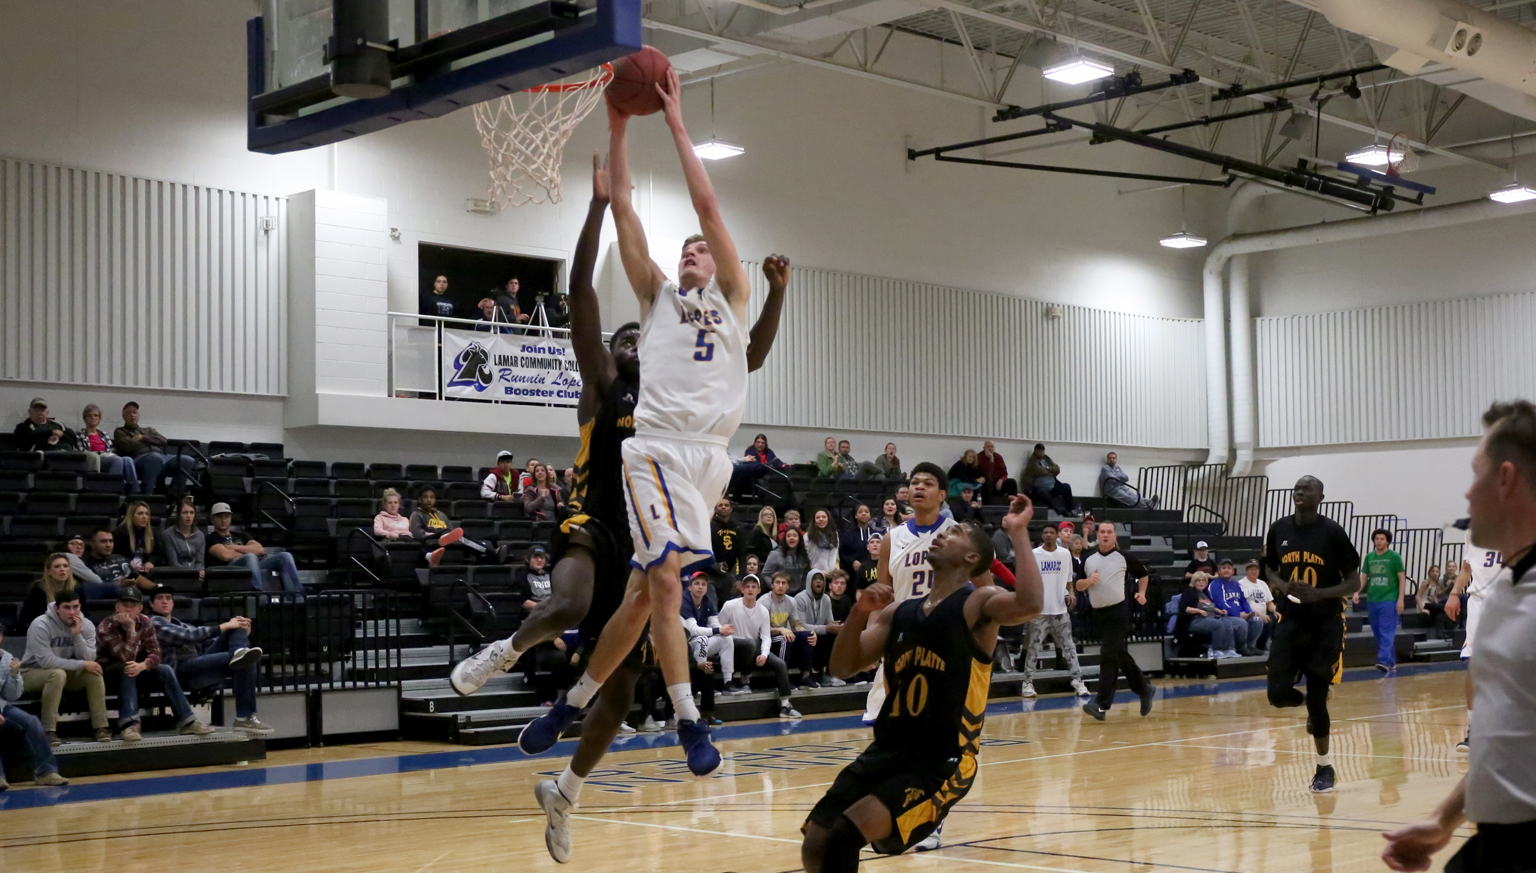 Michael Skinner beats his defenders to the basket in action against North Platte Community College on December 10.